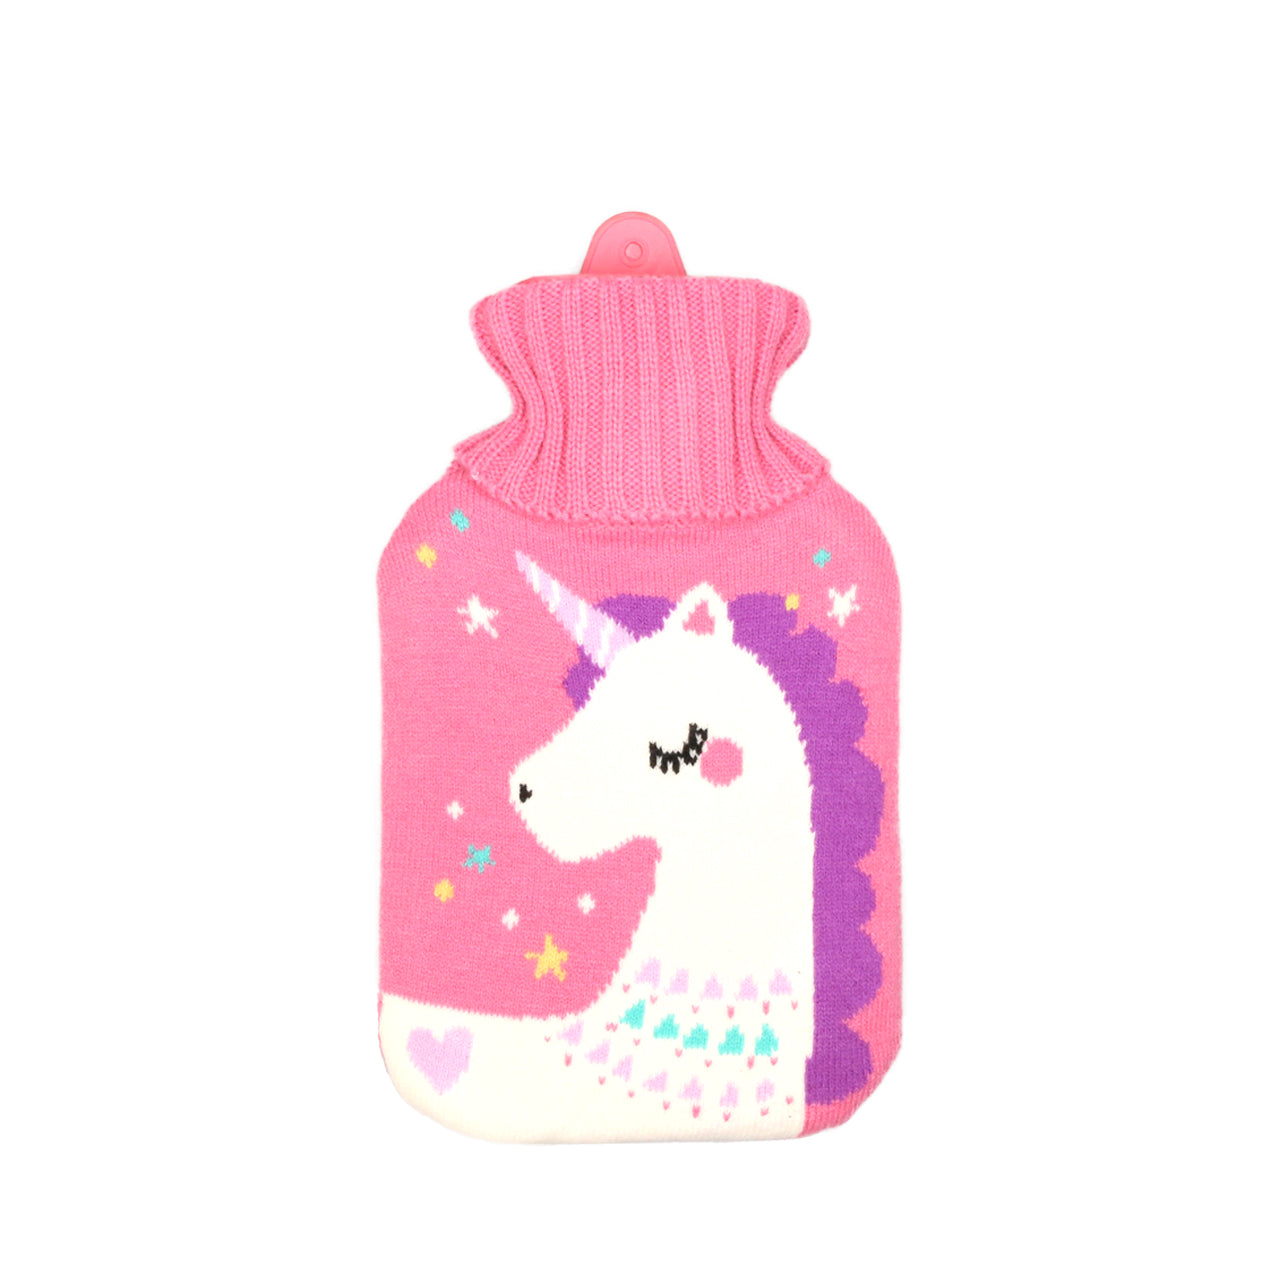 Hot Water Bottle & Cover 1 Litre - Unicorn - The Grain Shop Online Store